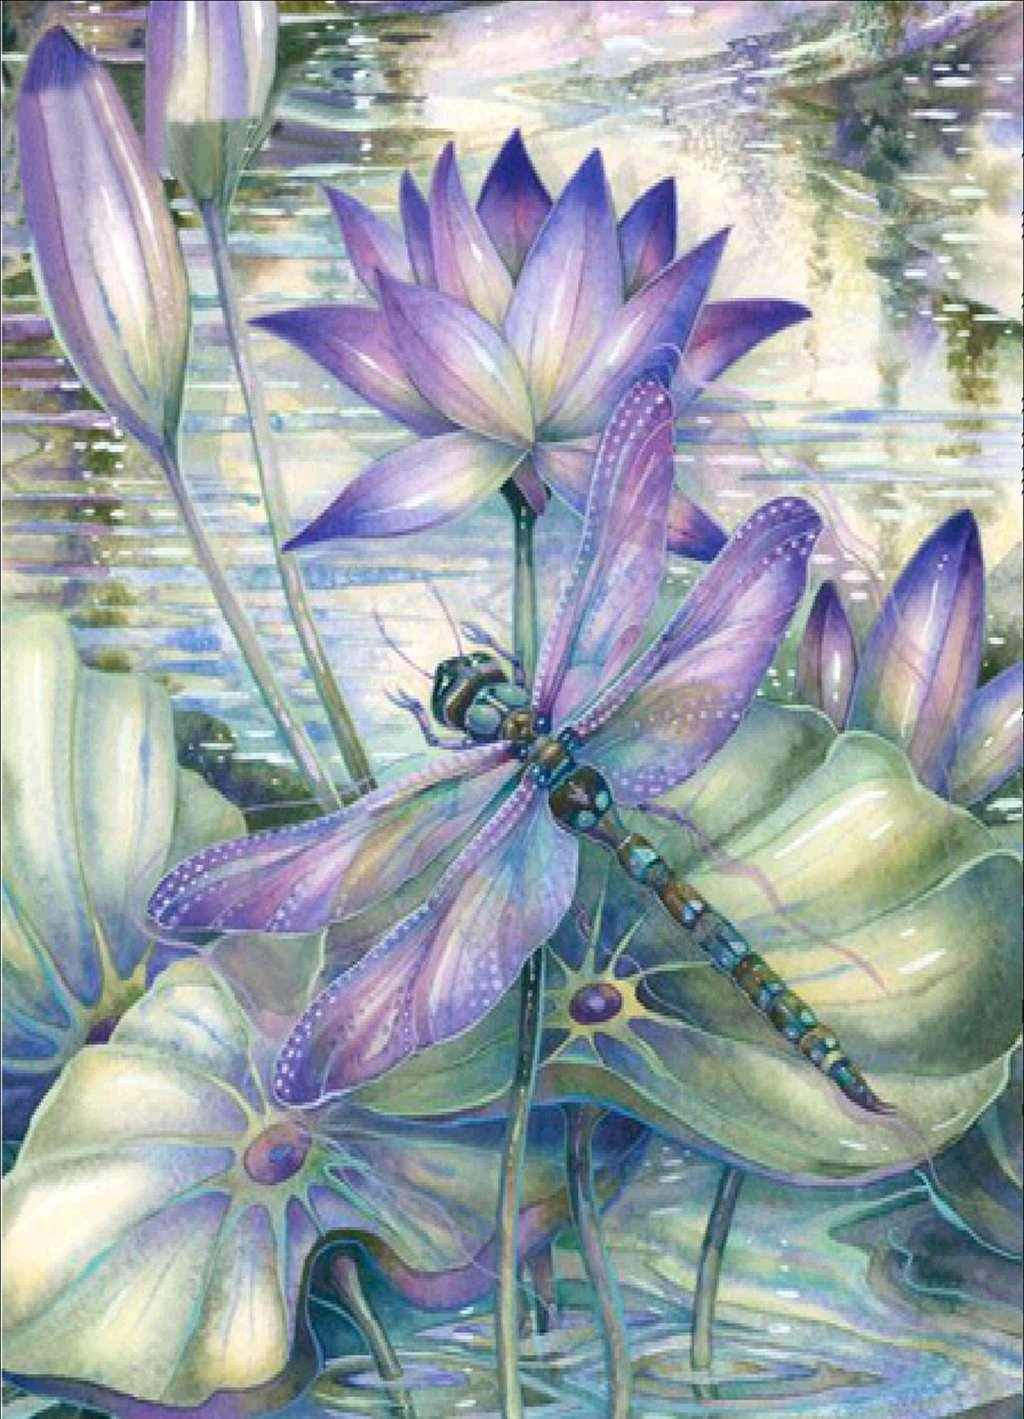 5D Diamond Painting by number Kits, Dragonfly pieno trapano strass ricamo a punto croce PICTURES Arts Craft for home Wall Decor, 30 x 40 cm Nehome